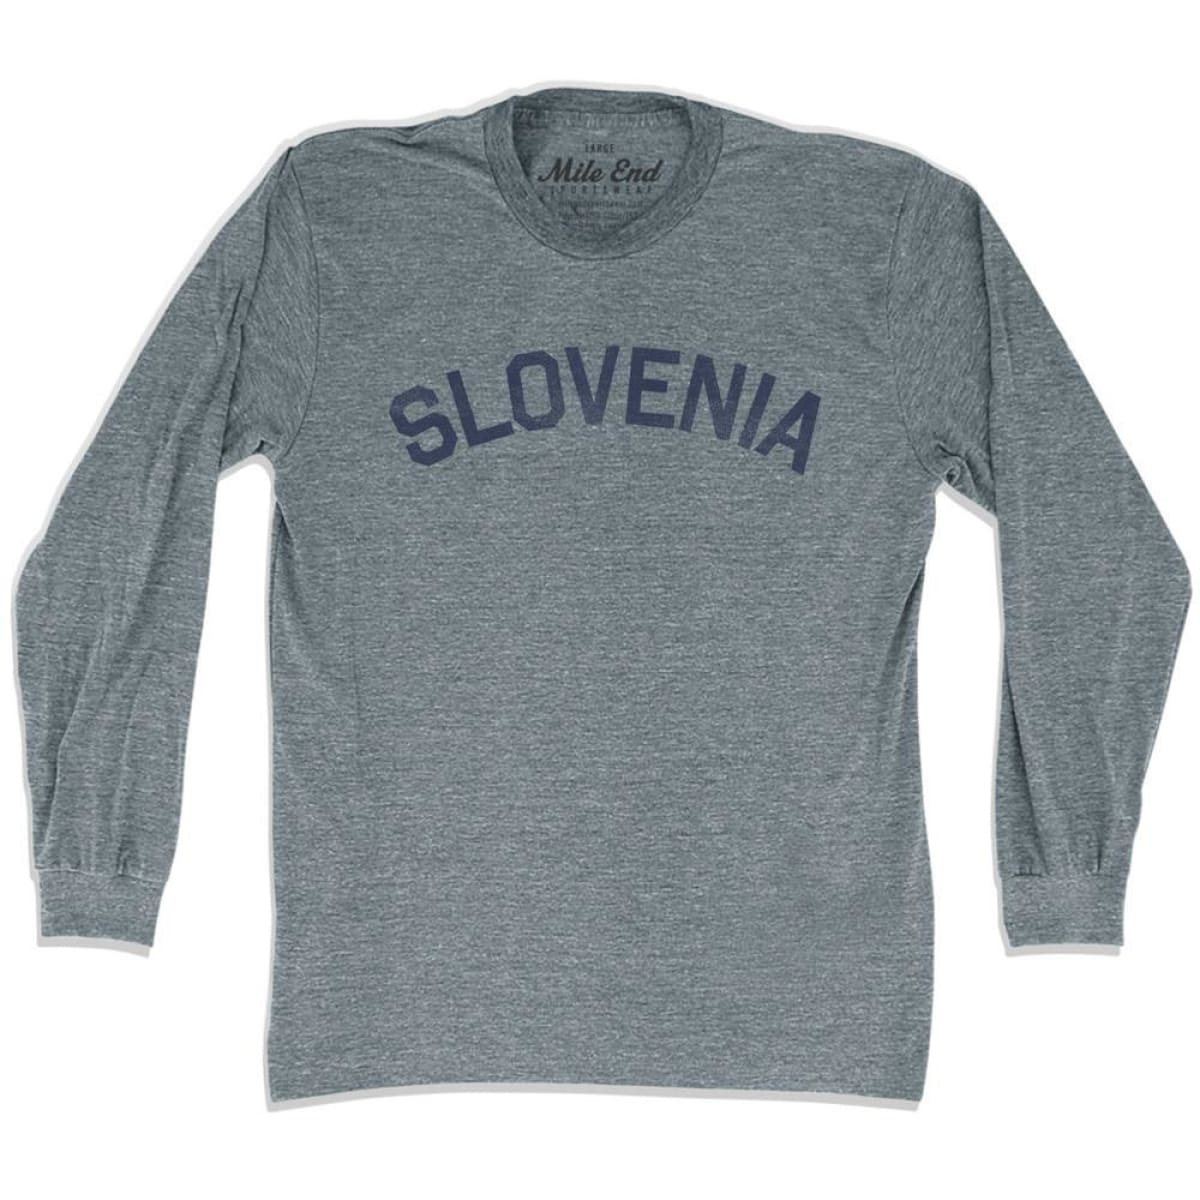 Slovenia City Vintage Long Sleeve T-shirt - Athletic Grey / Adult X-Small - Mile End City